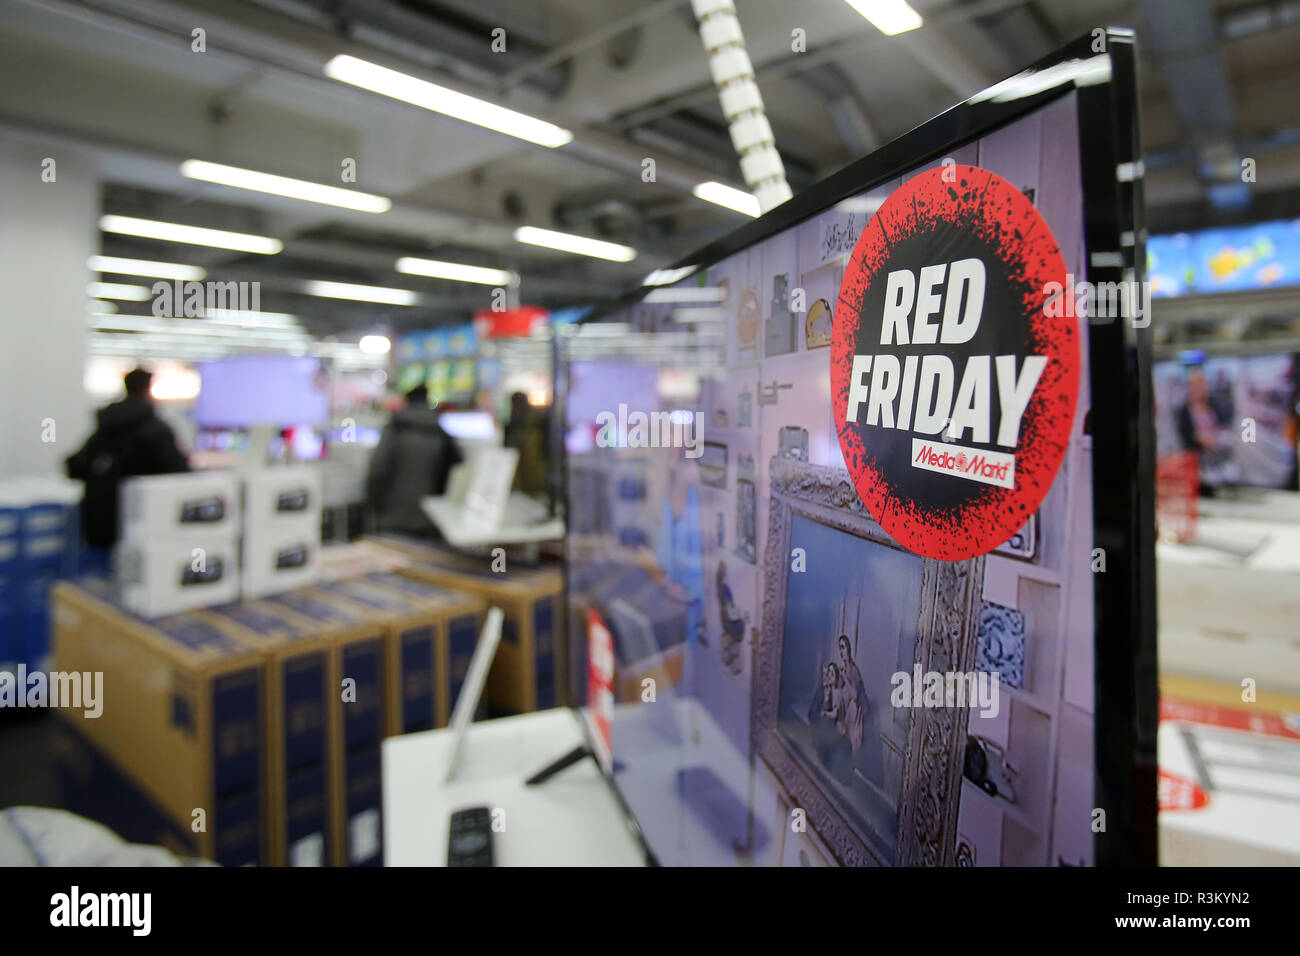 Hamburg Germany 23rd Nov 2018 Red Friday Is Written On A Sticker In A Media Markt Store In Hamburg On Discount Day Black Friday According To Estimates By The Handelsverband Deutschland Hde